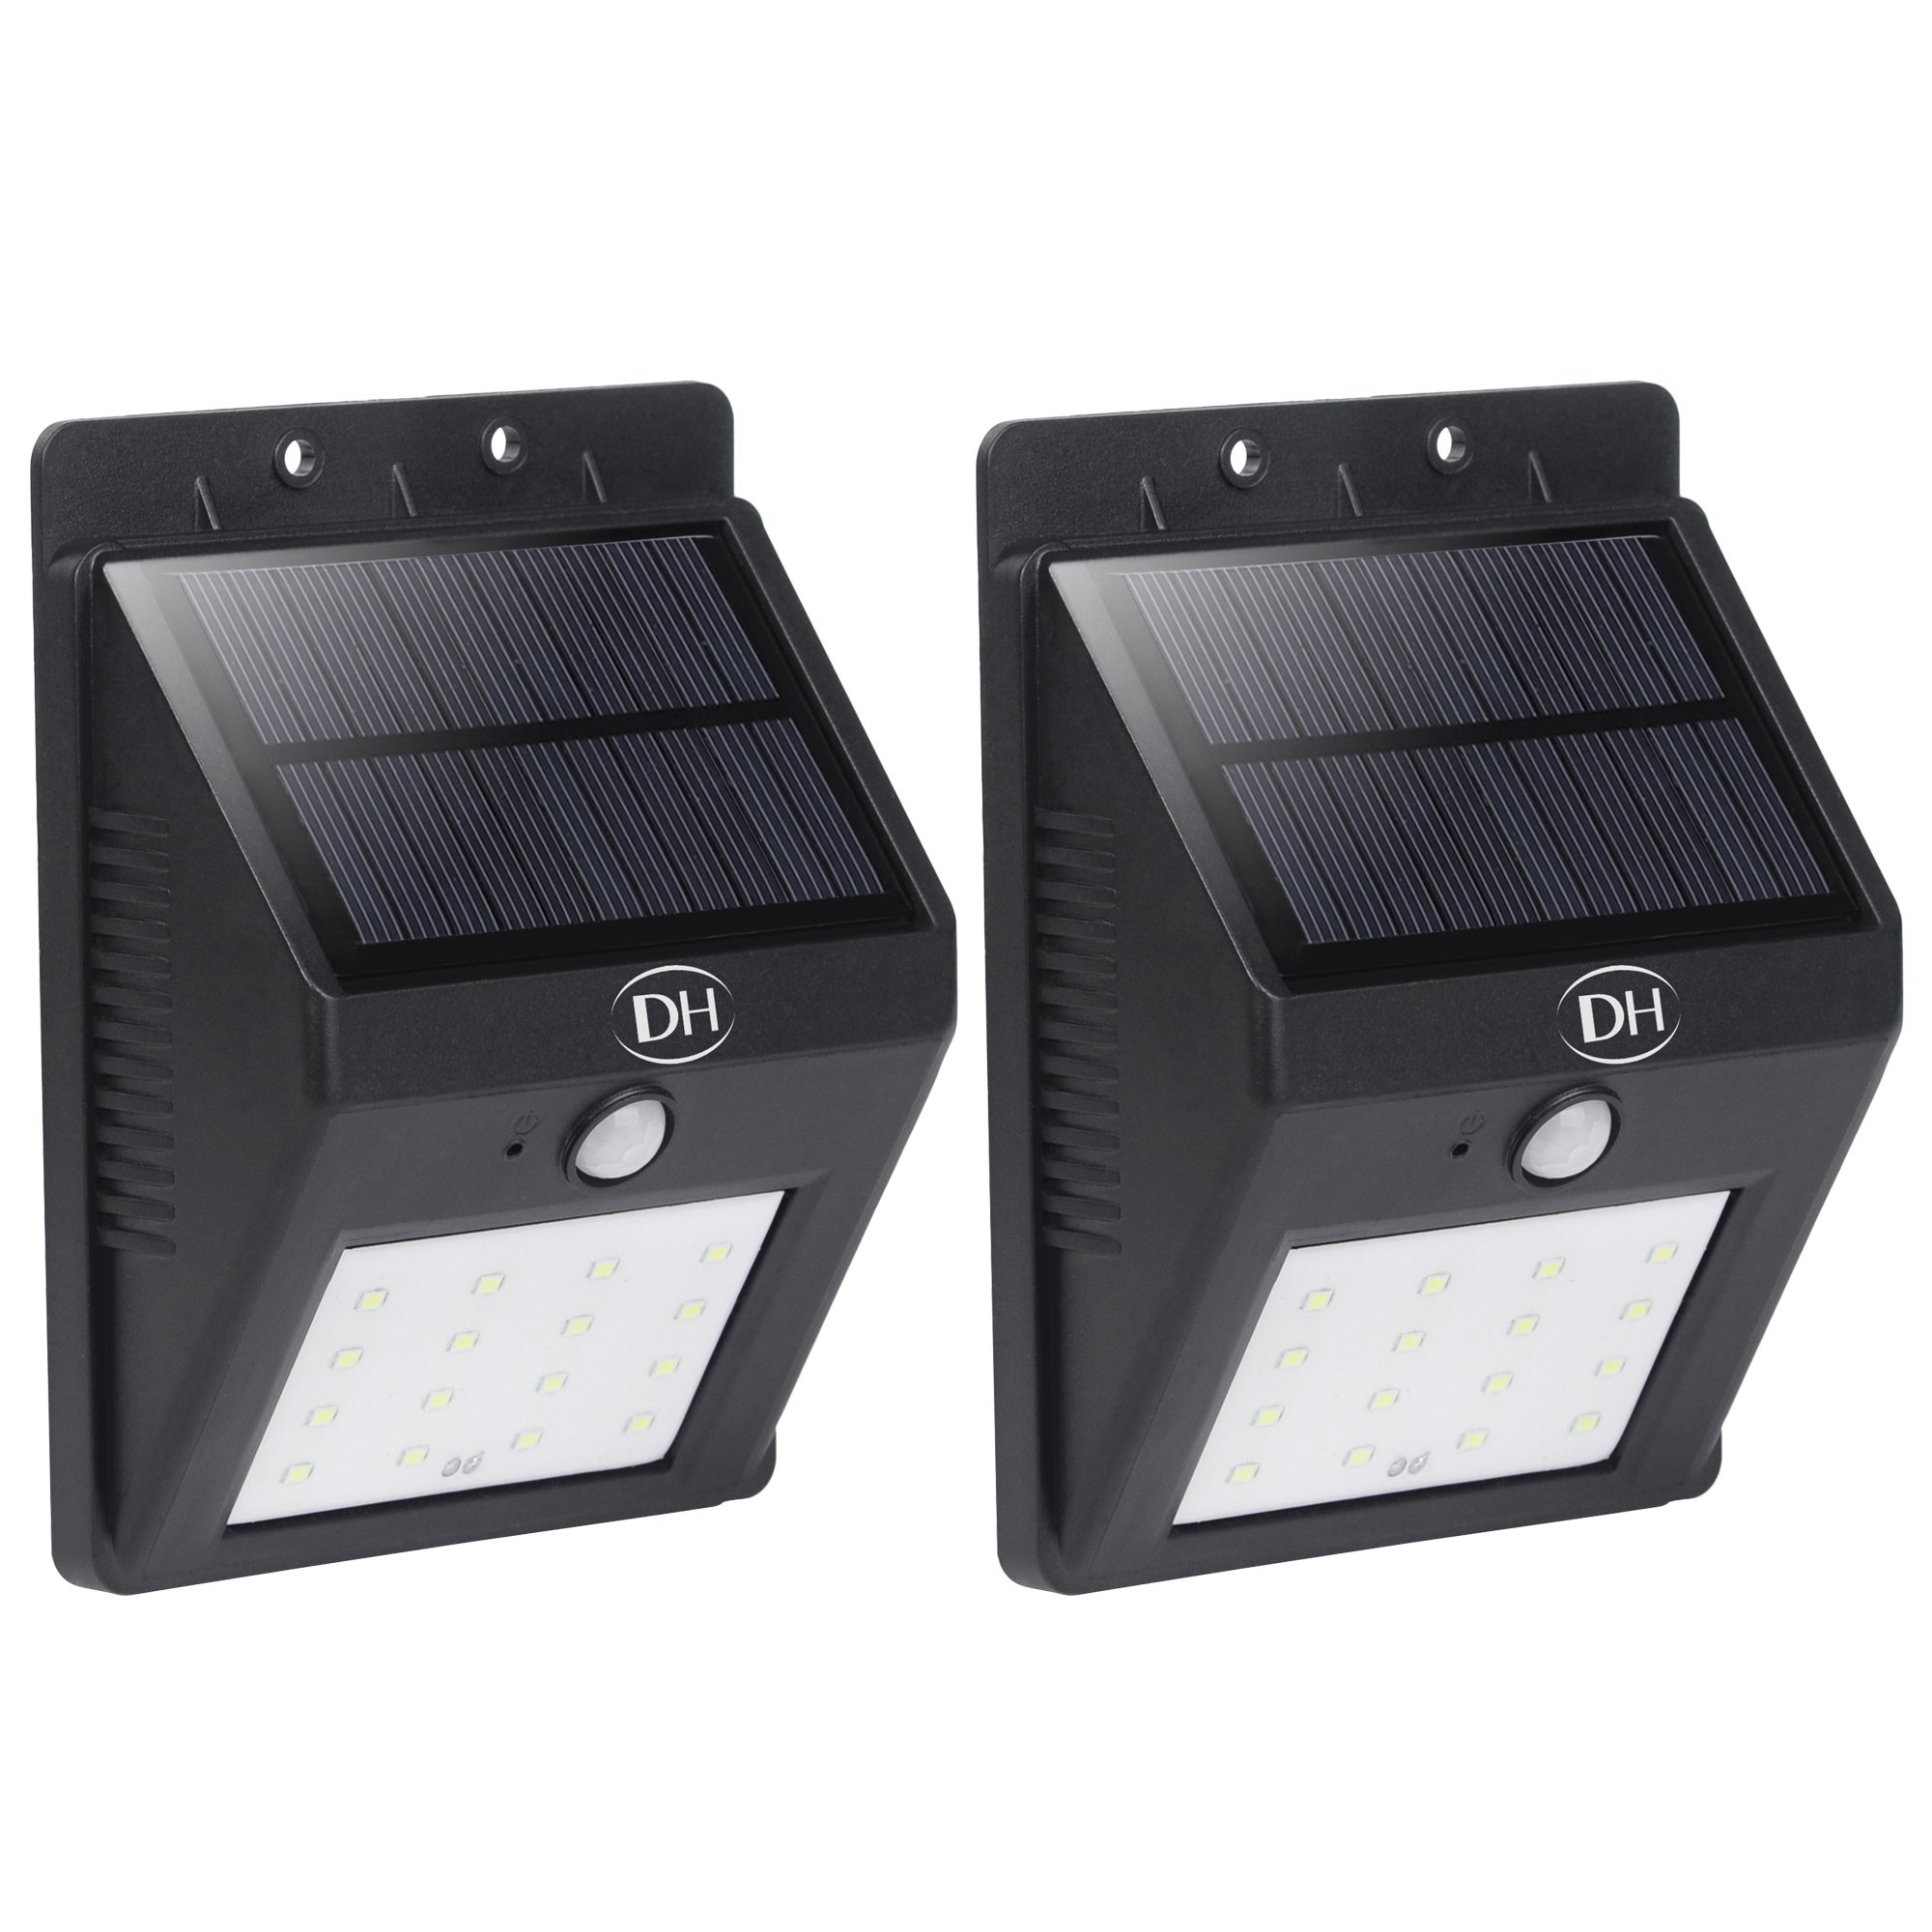 SHDH Solar Powered 16 LED Outdoor Security Wall Lights with Motion Sensor, Super Bright, Weather-Proof, Easy Installation, No Wire Needed, Suitable for Backyard, Deck, Patio and Garage, 2-Pack